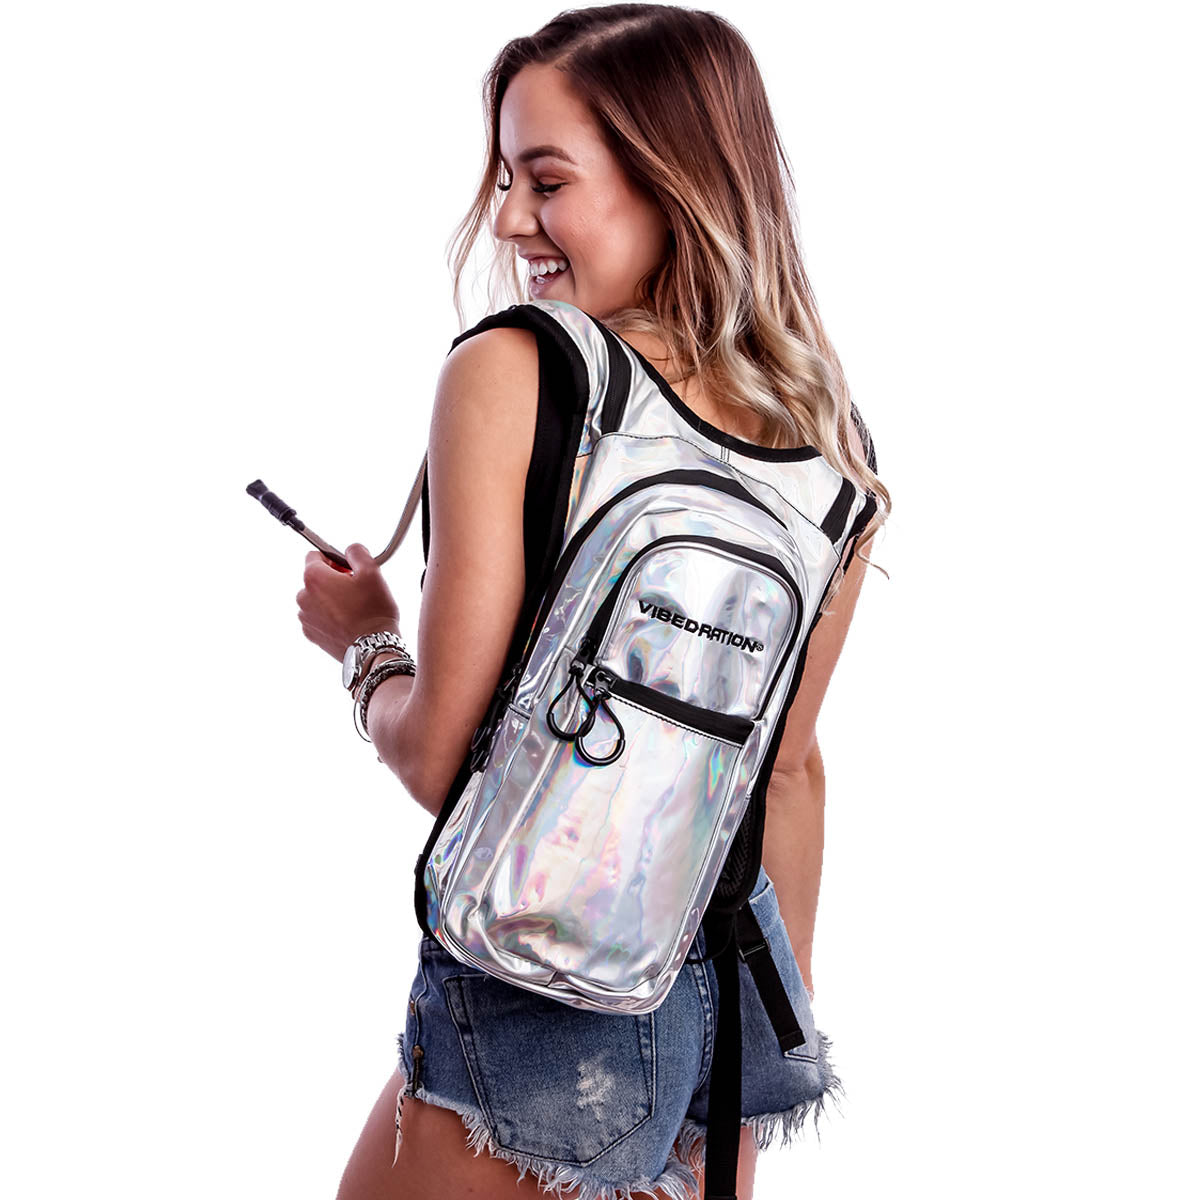 Female wearing silver holographic hydration pack.